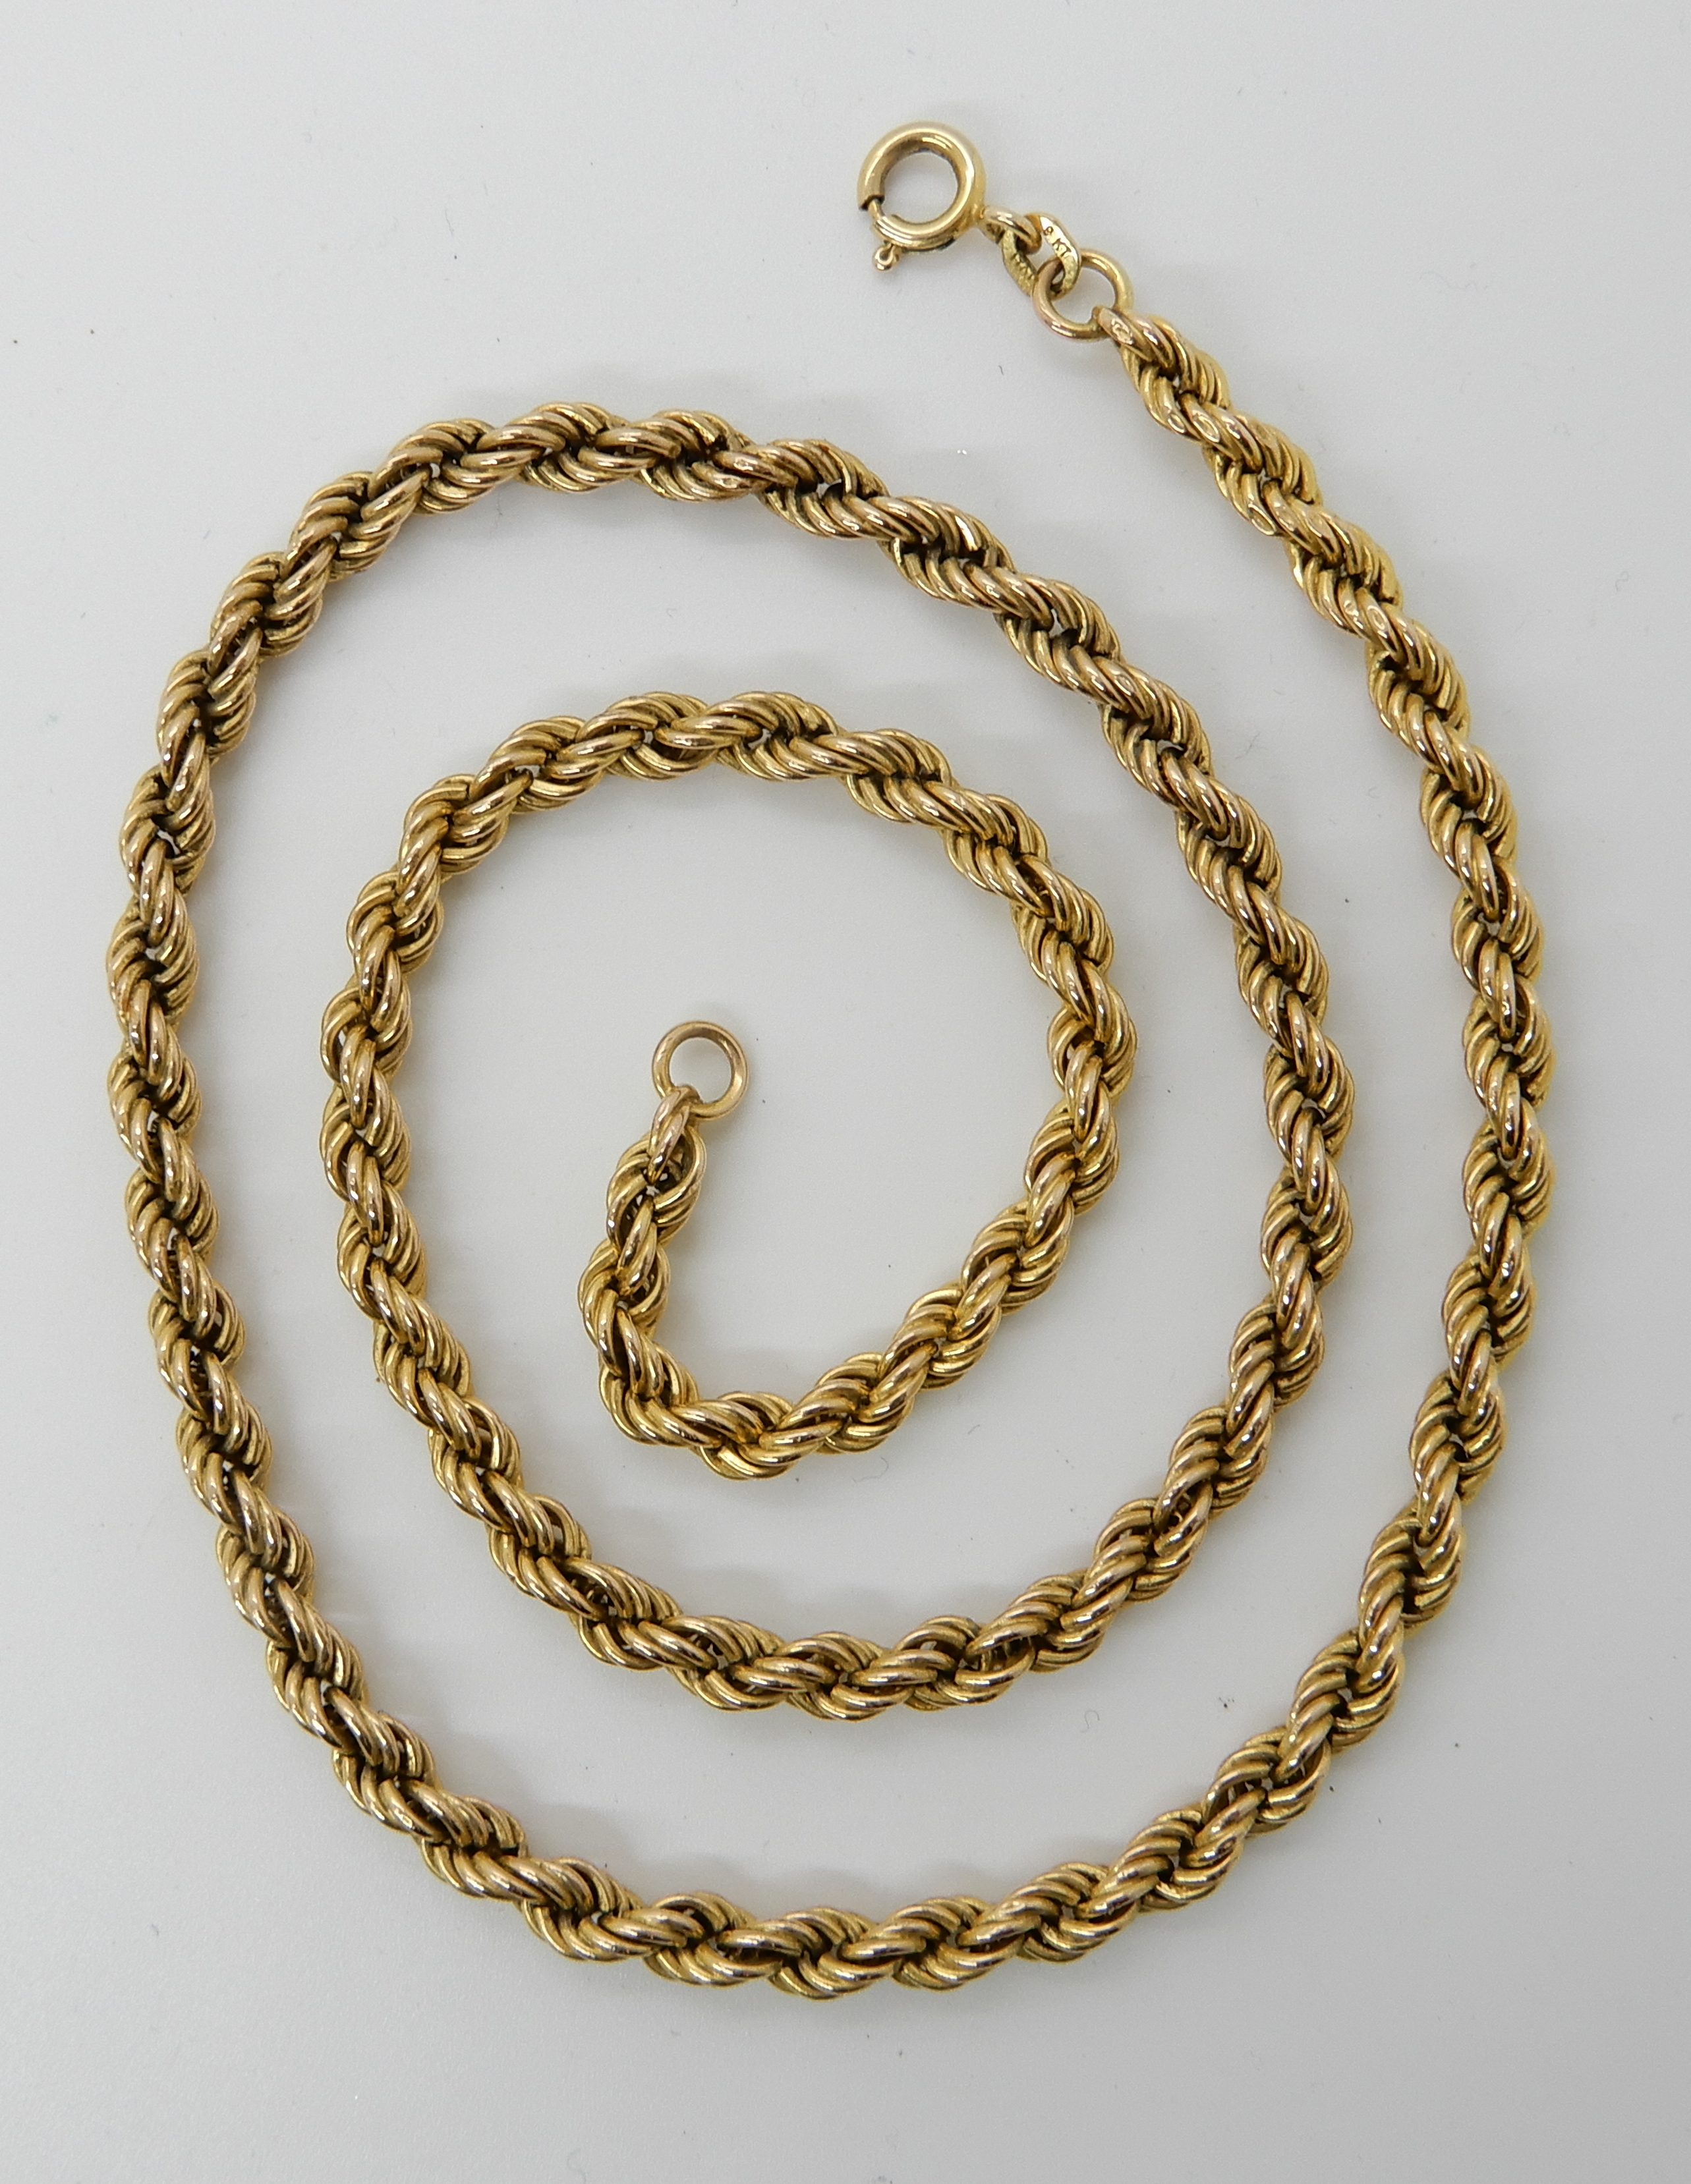 Lot 49 - A 9ct gold rope chain, length 50.5cm, weight 9.2gms Condition Report: Available upon request